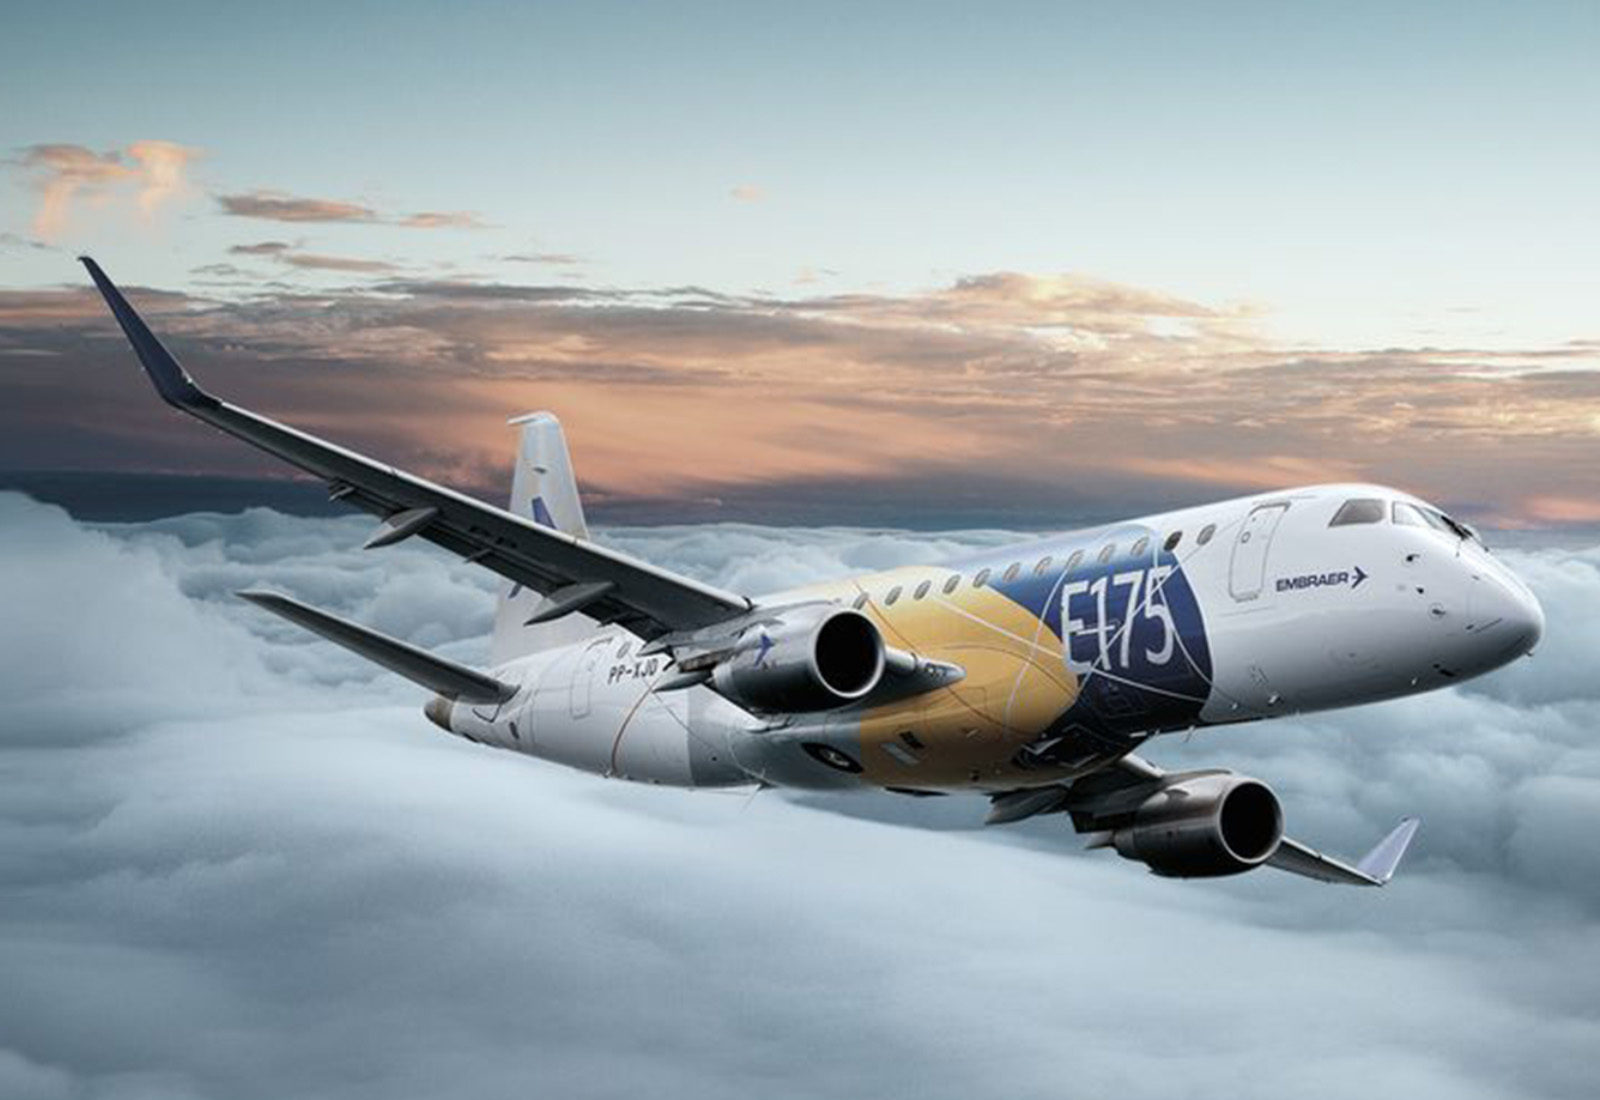 Falko Regional Aircraft Limited adds three (3) Embraer E175 aircraft to its portfolio on lease to Republic Airways